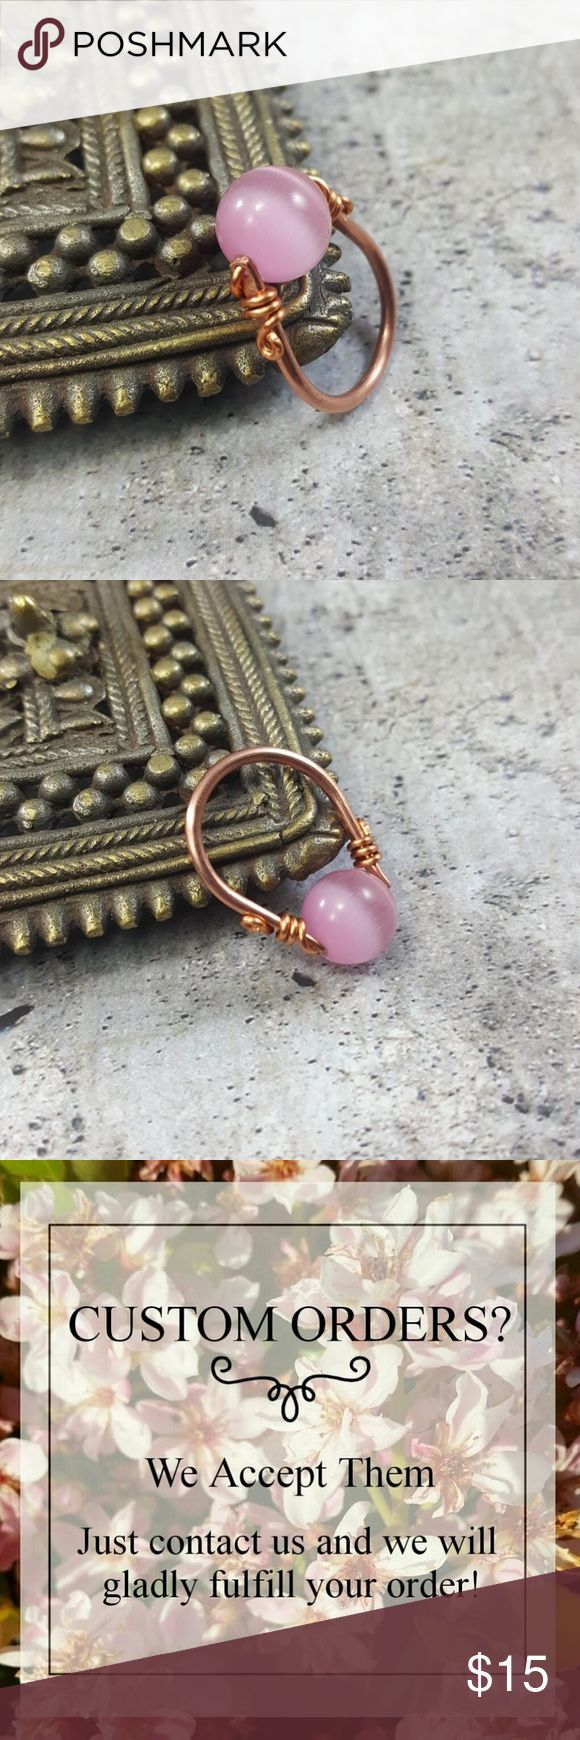 Pink Glass Cats Eye Ring Copper Wire Wrap Handmade A beautiful pink glass cats eye ring made with handmade copper wire wrapping.  • Pink glass cats eye bead 10mm. • Rings made to order ANY SIZE. • Also available in Sterling Silver or Gold color wire. • Comes in a jewlery gift box. • Perfect for gifts!🎁  ❤️Visit my website www.DGwiring.com❤️ DGwiring Jewelry Rings